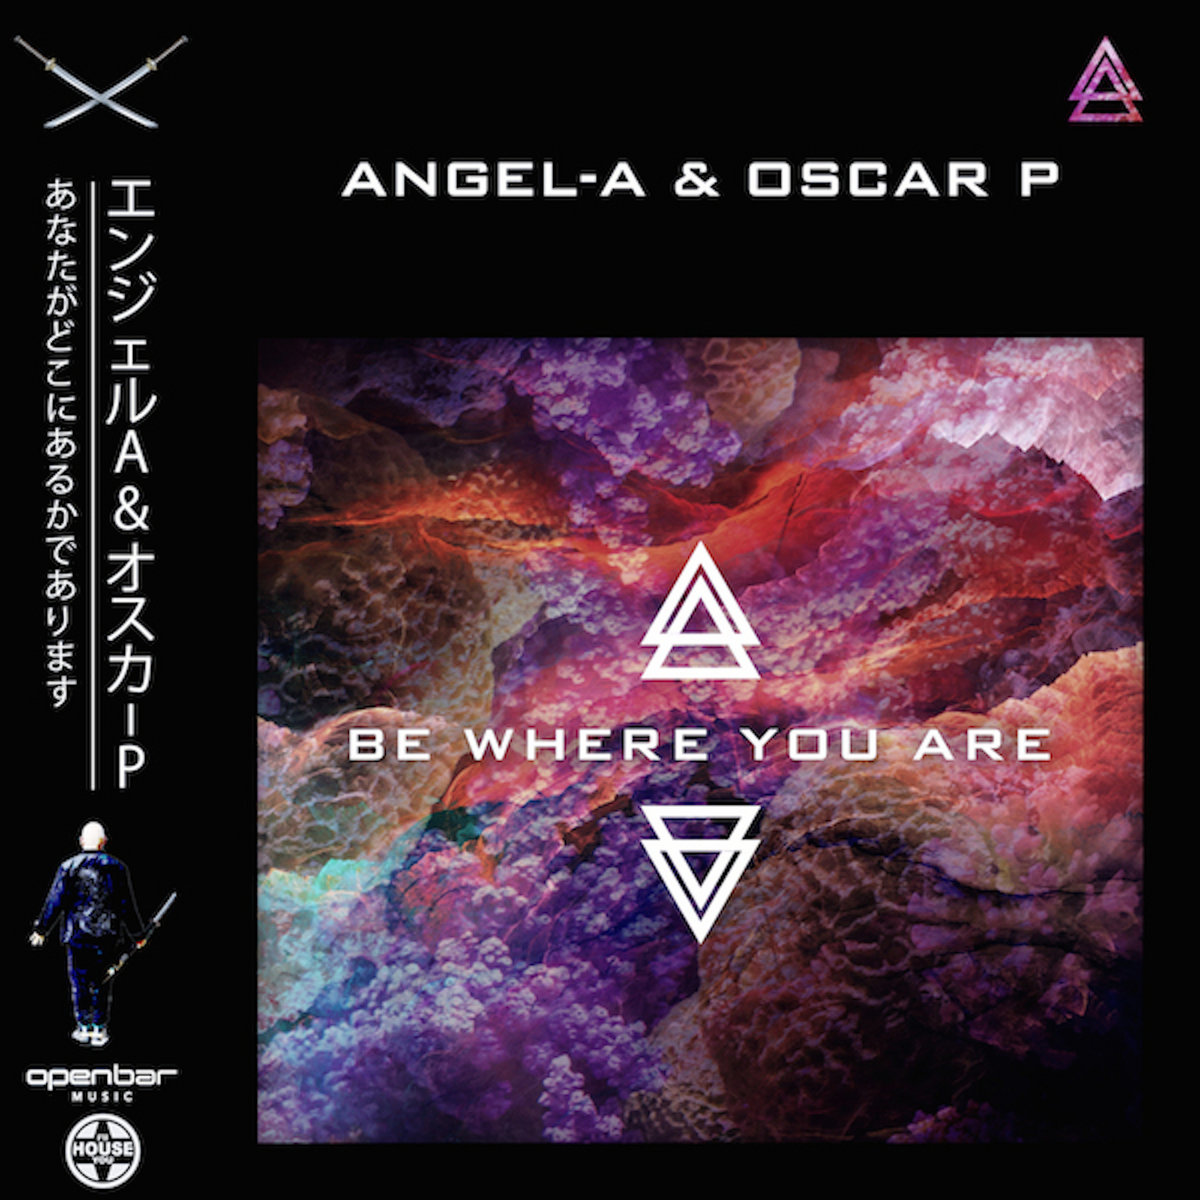 Angel-A, Oscar P - Be Where You Are (Oscar P Afro Rebel Mix)